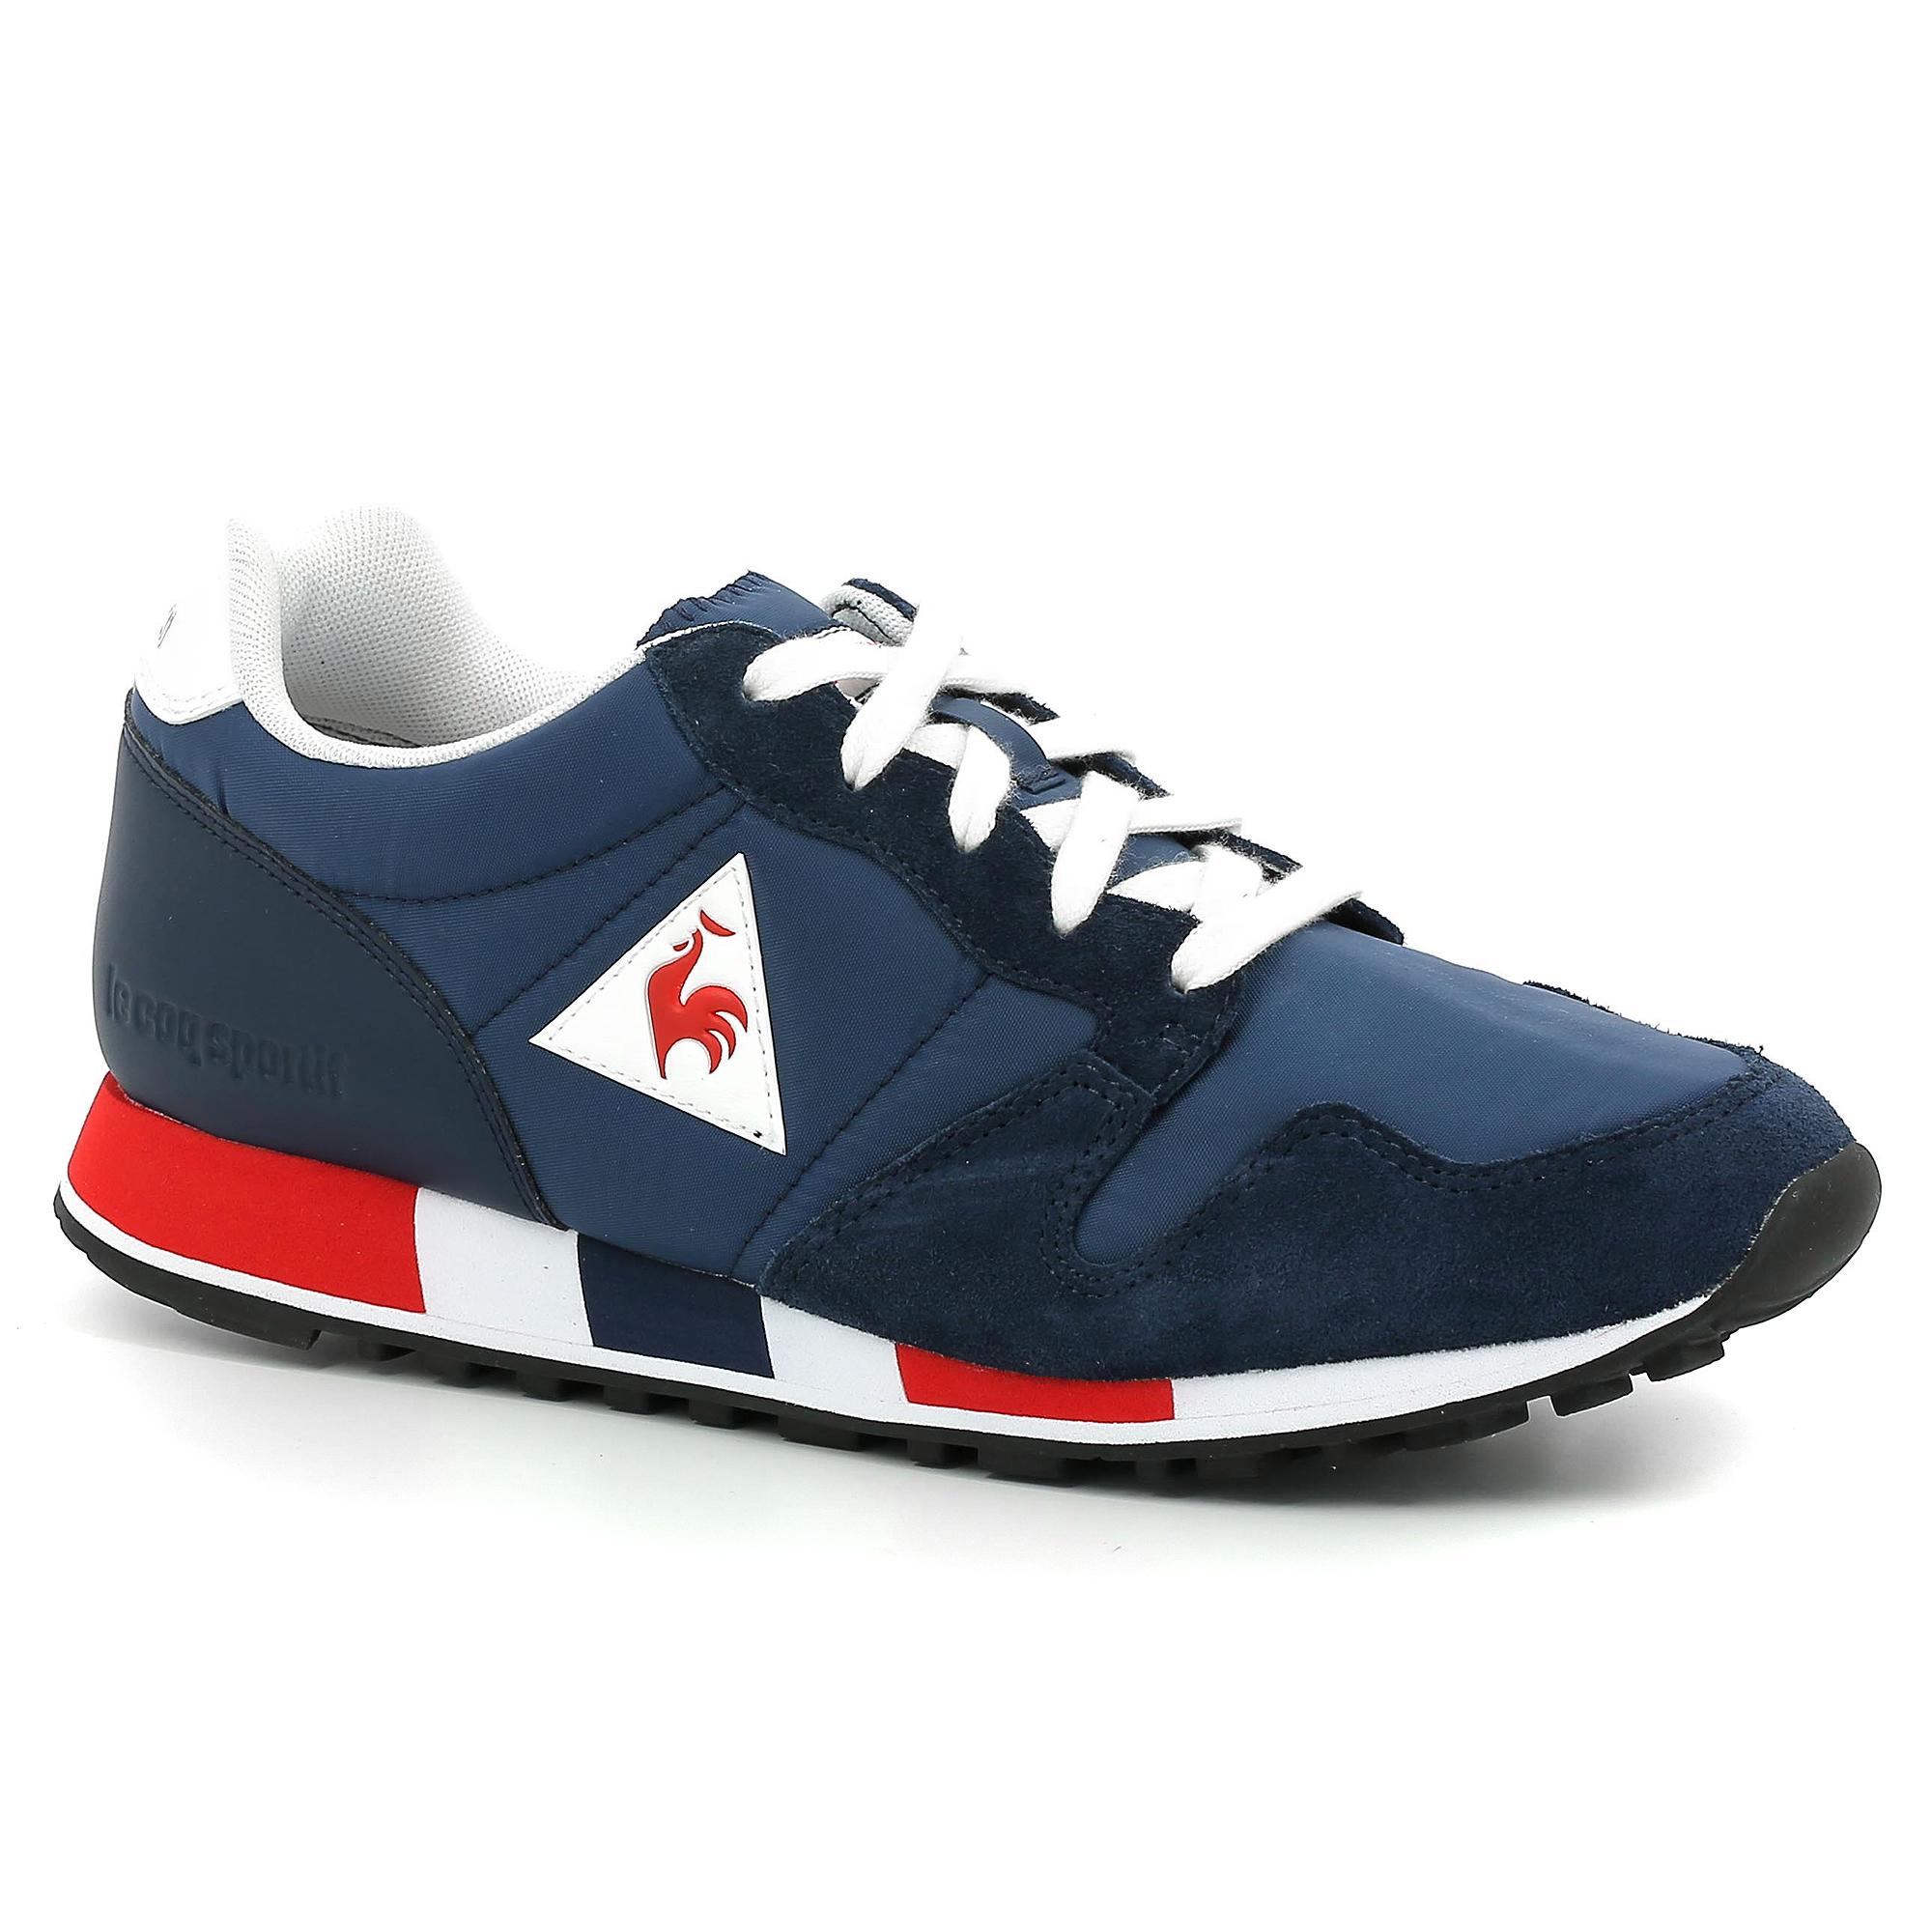 best service 77894 355f2 LE COQ SPORTIF OMEGA SPORT DRESS BLUE PURE RED - gallery 0 ...